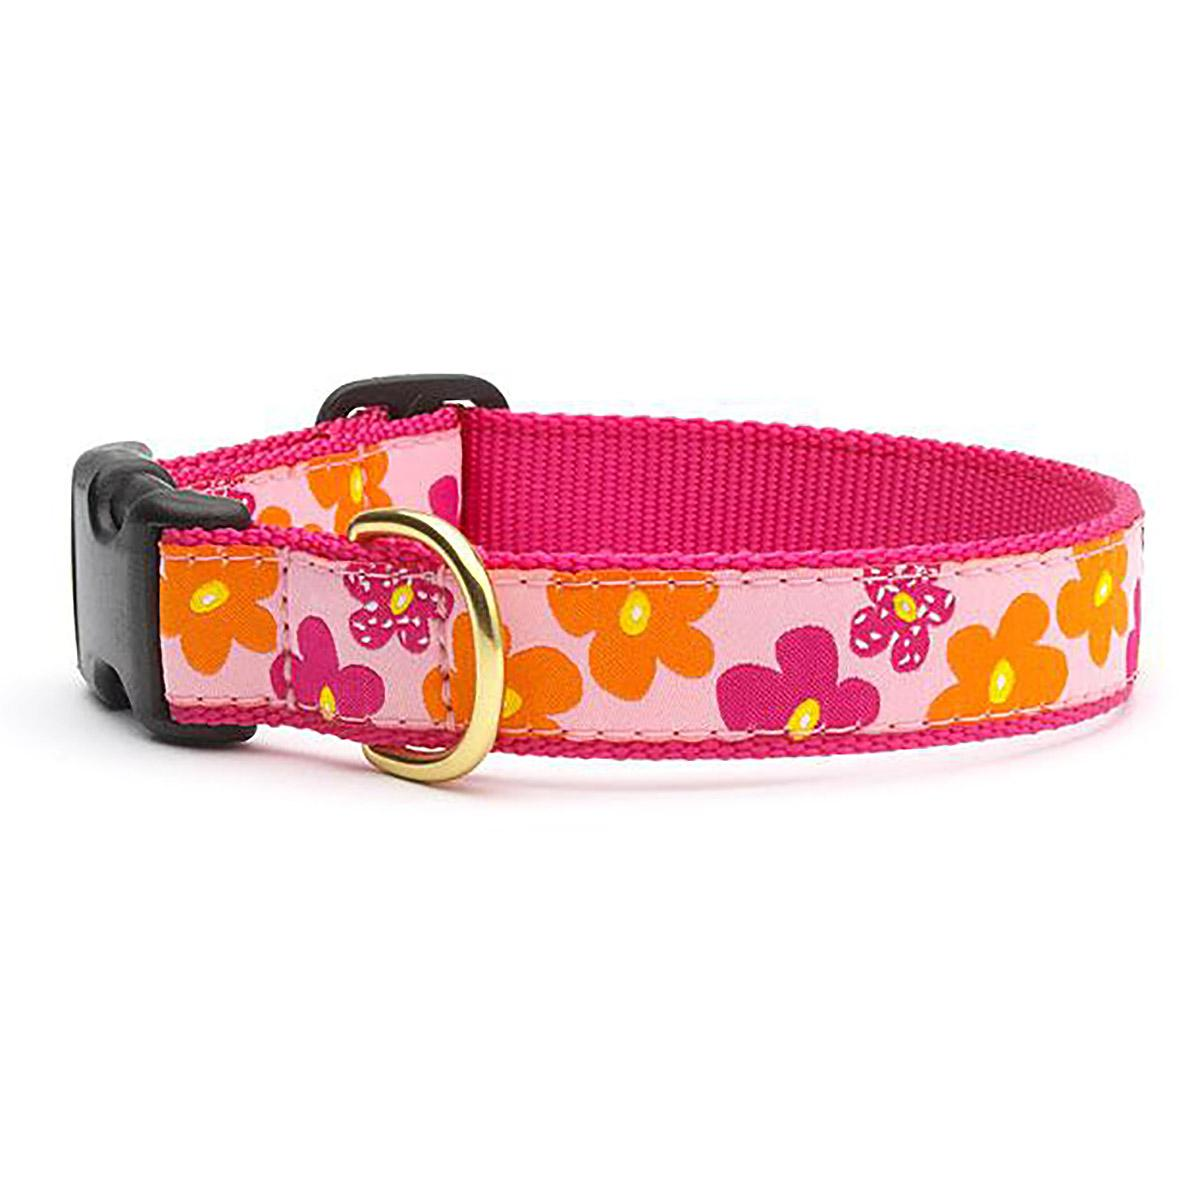 Flower Power Dog Collar by Up Country